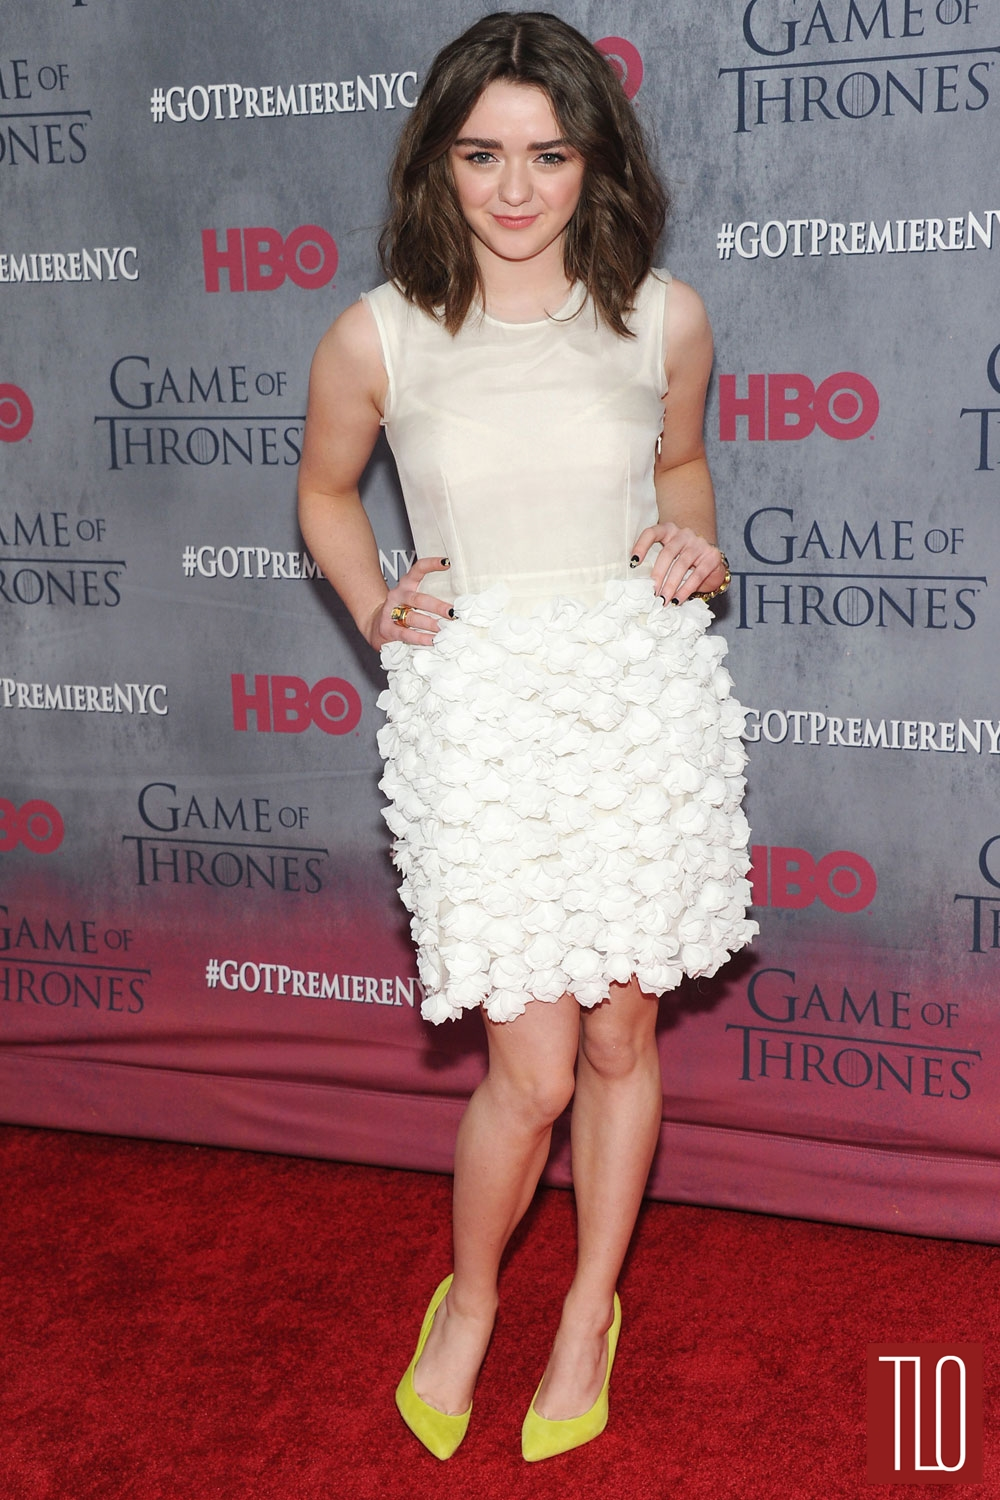 Game-Thrones-Season-4-Premiere-Red-Carpet-Rundown-Tom-Lorenzo-Site-TLO (1)